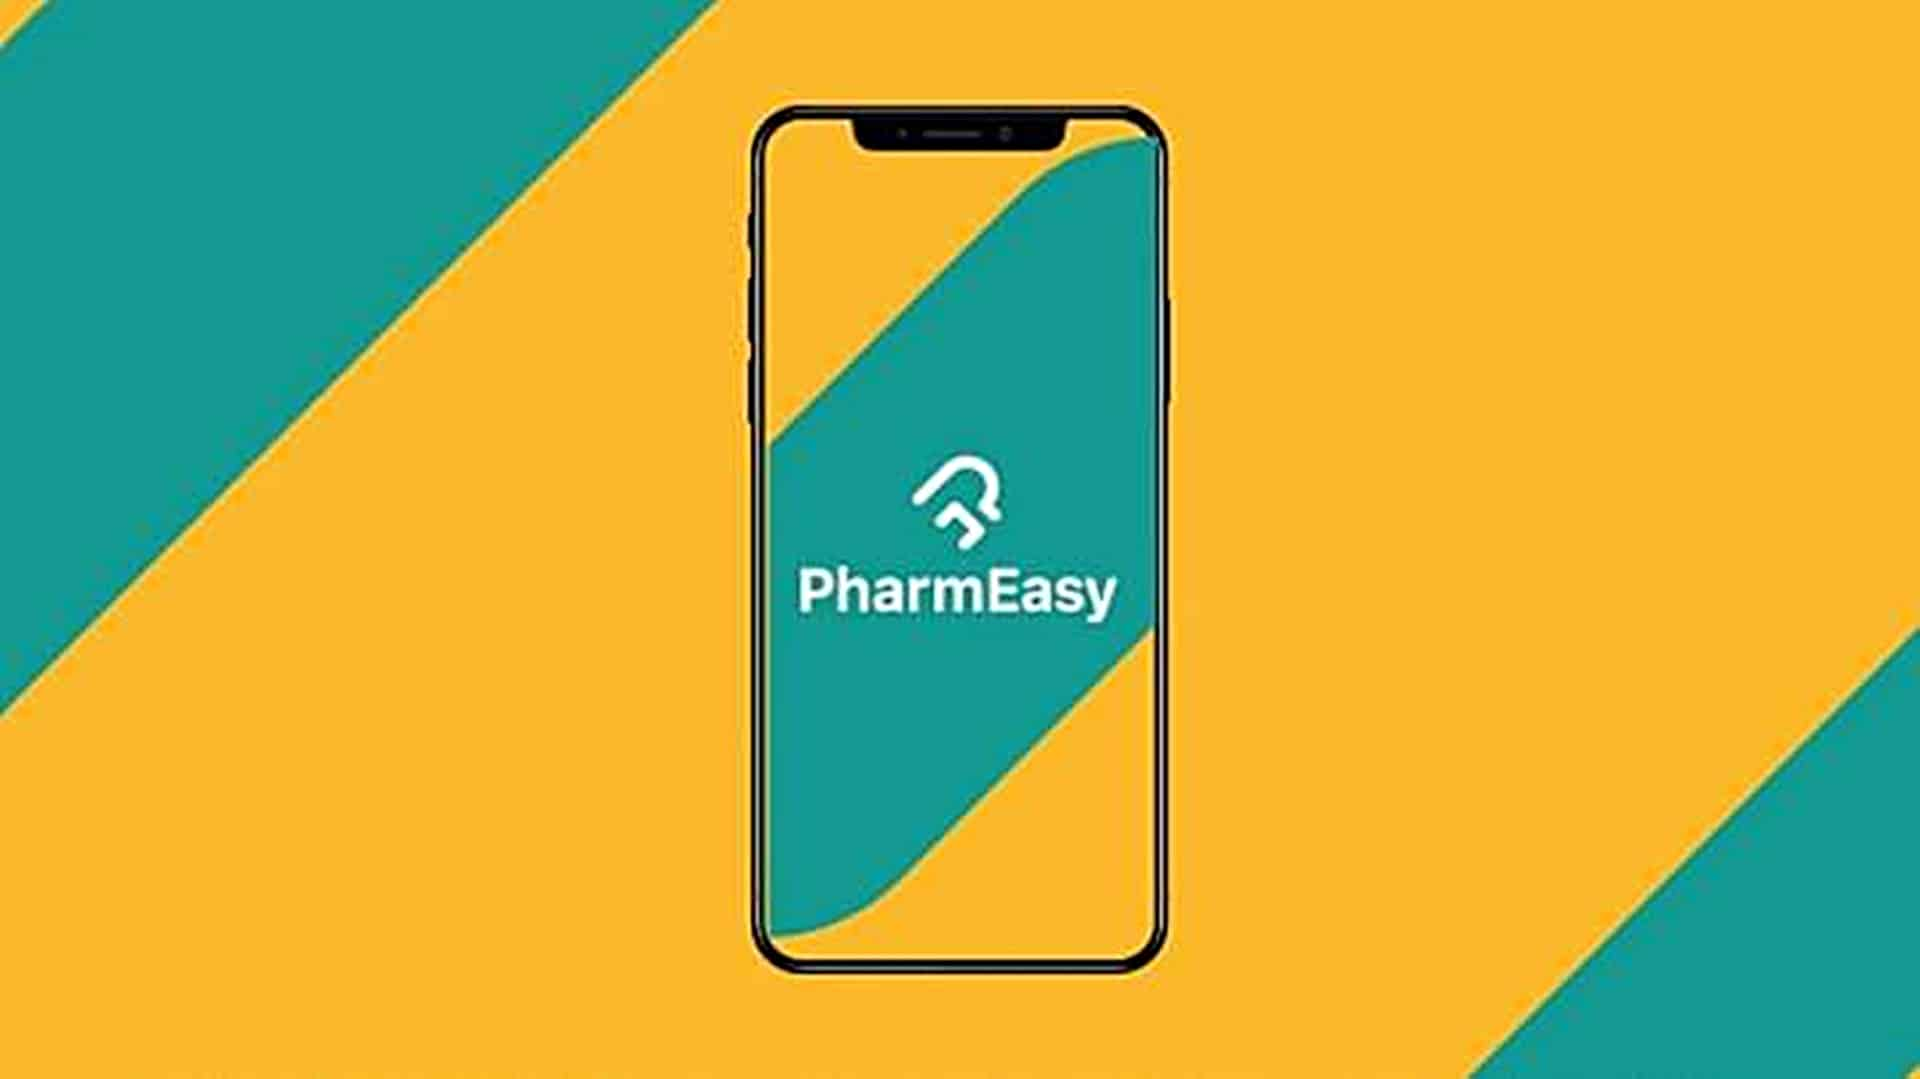 PharmEasy to hire over 200 engineers for new development centres